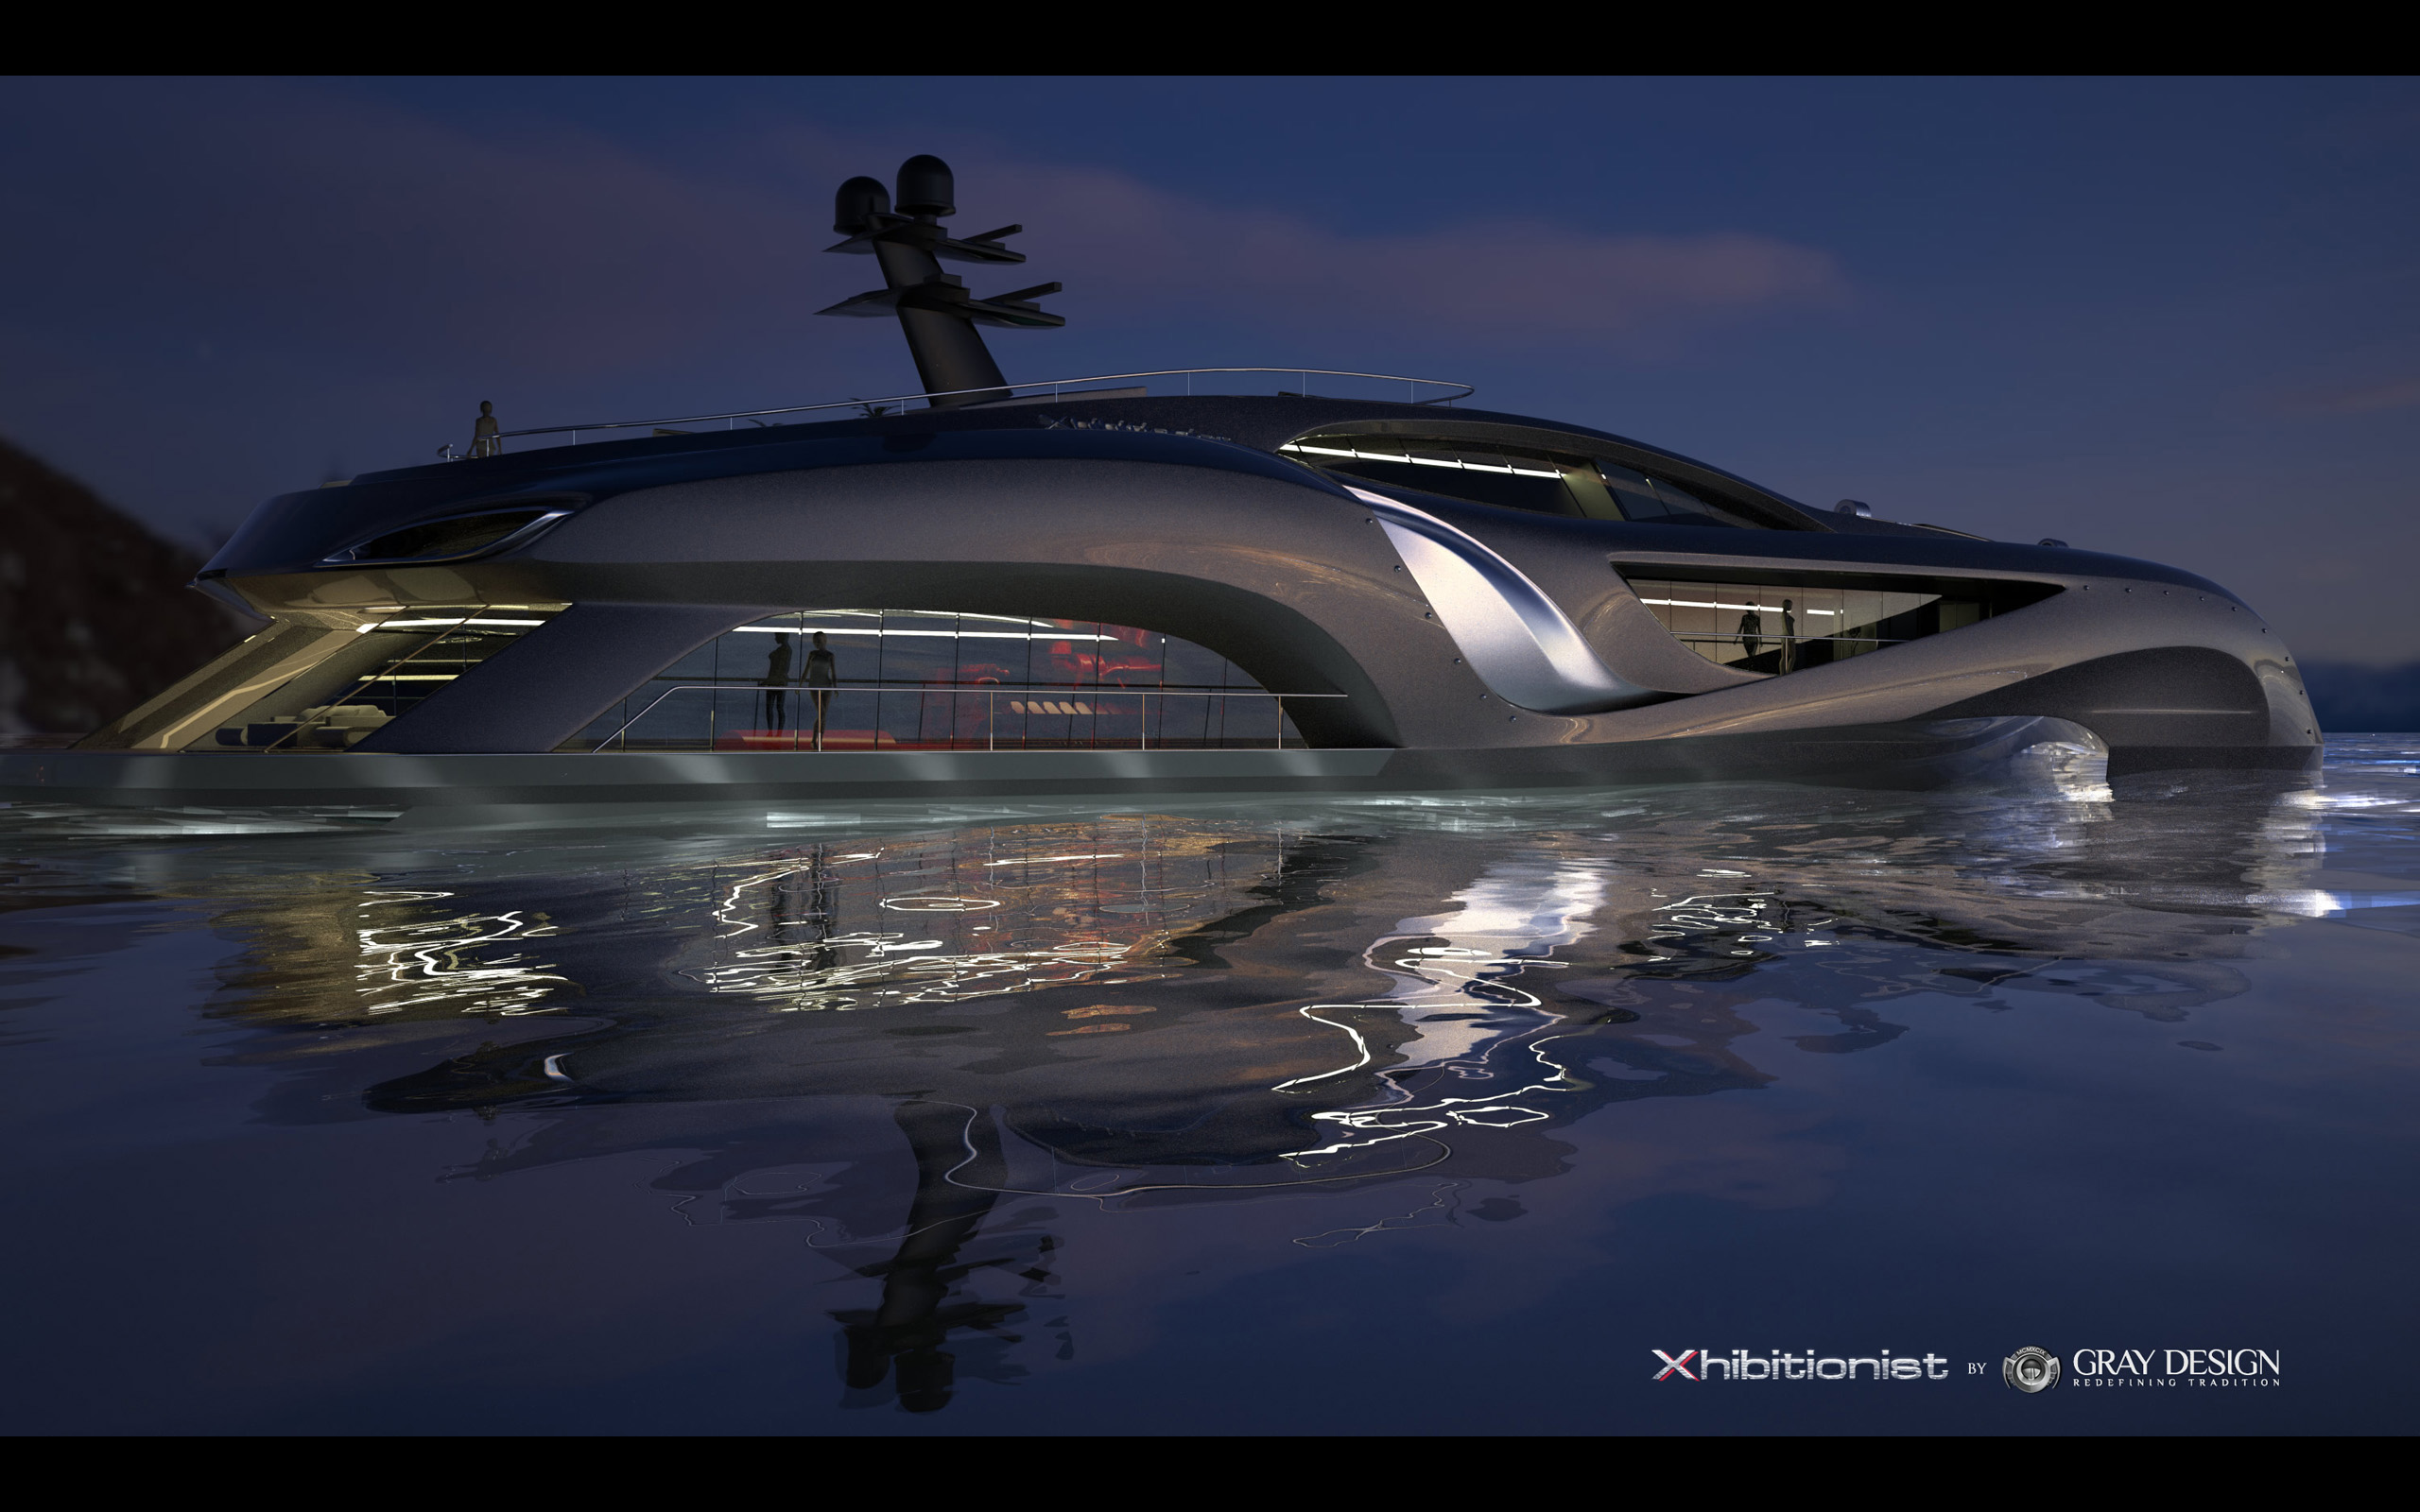 2013 Gray Design Strand Craft 166 Xhibitionist Yacht Concept Boat Boats Ship Ships Luxury Wallpaper